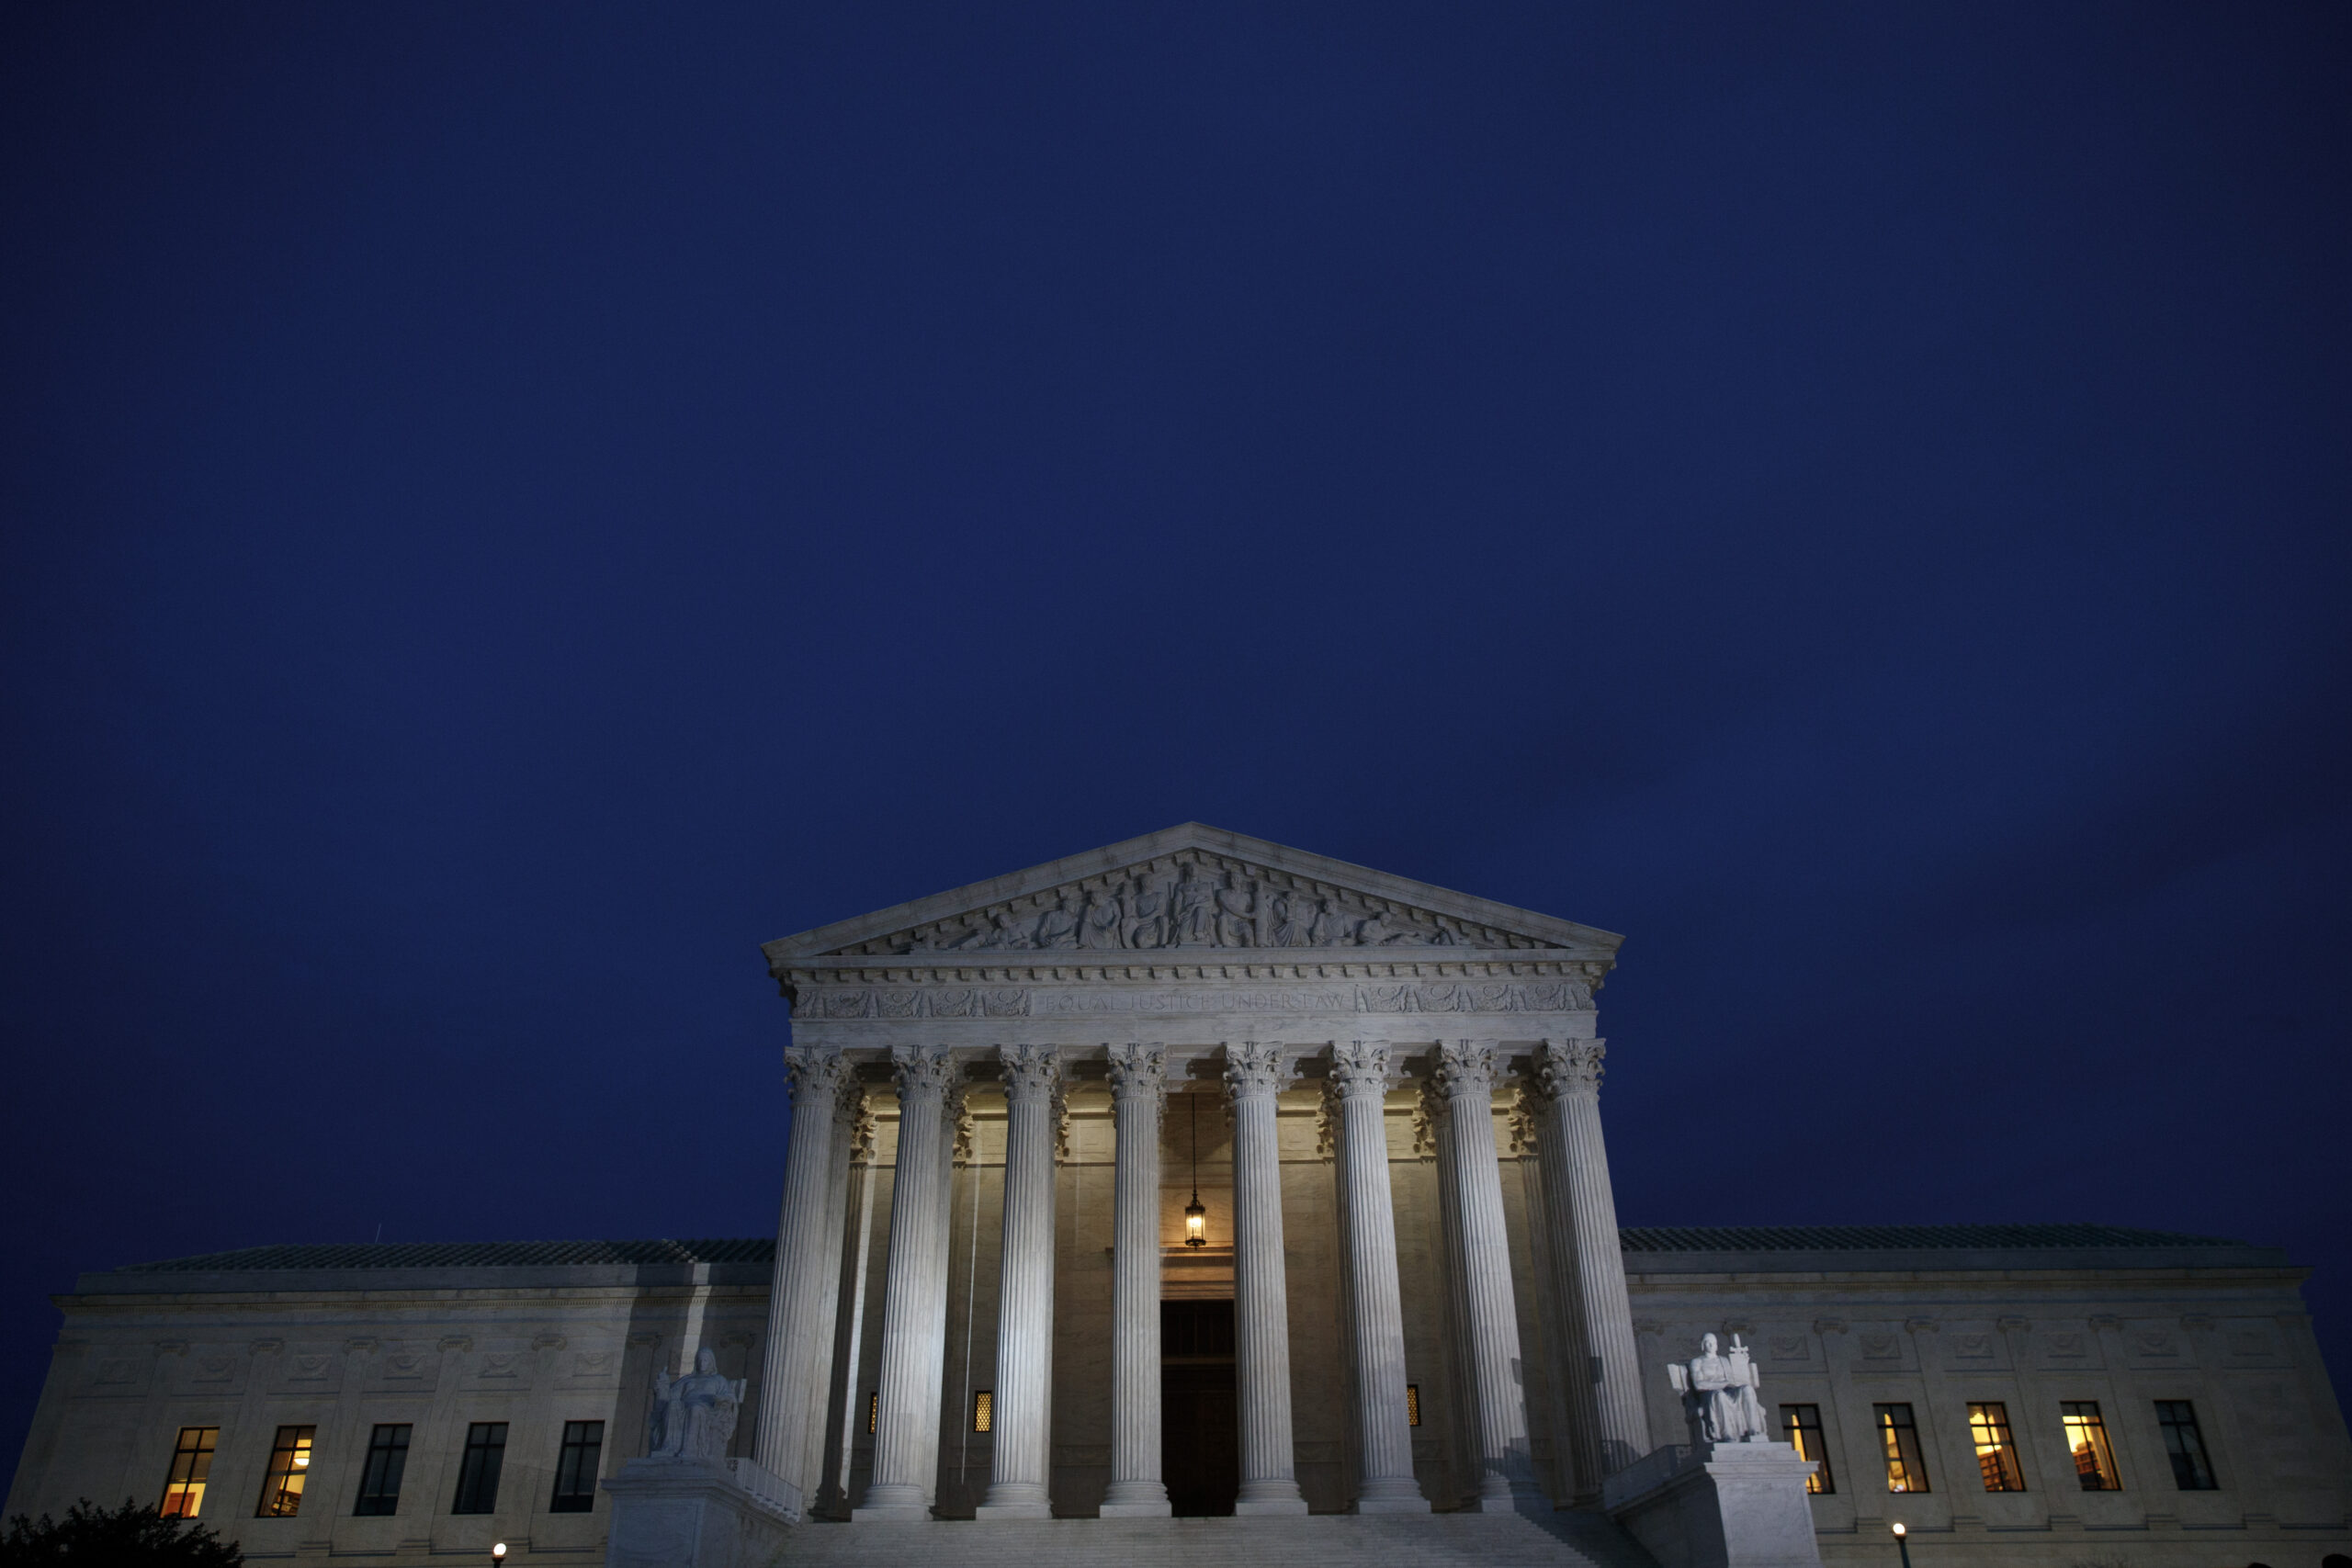 A view of the Supreme Court at dusk, January 31, 2017 in Washington, D.C. Credit: Drew Angerer/Getty Images